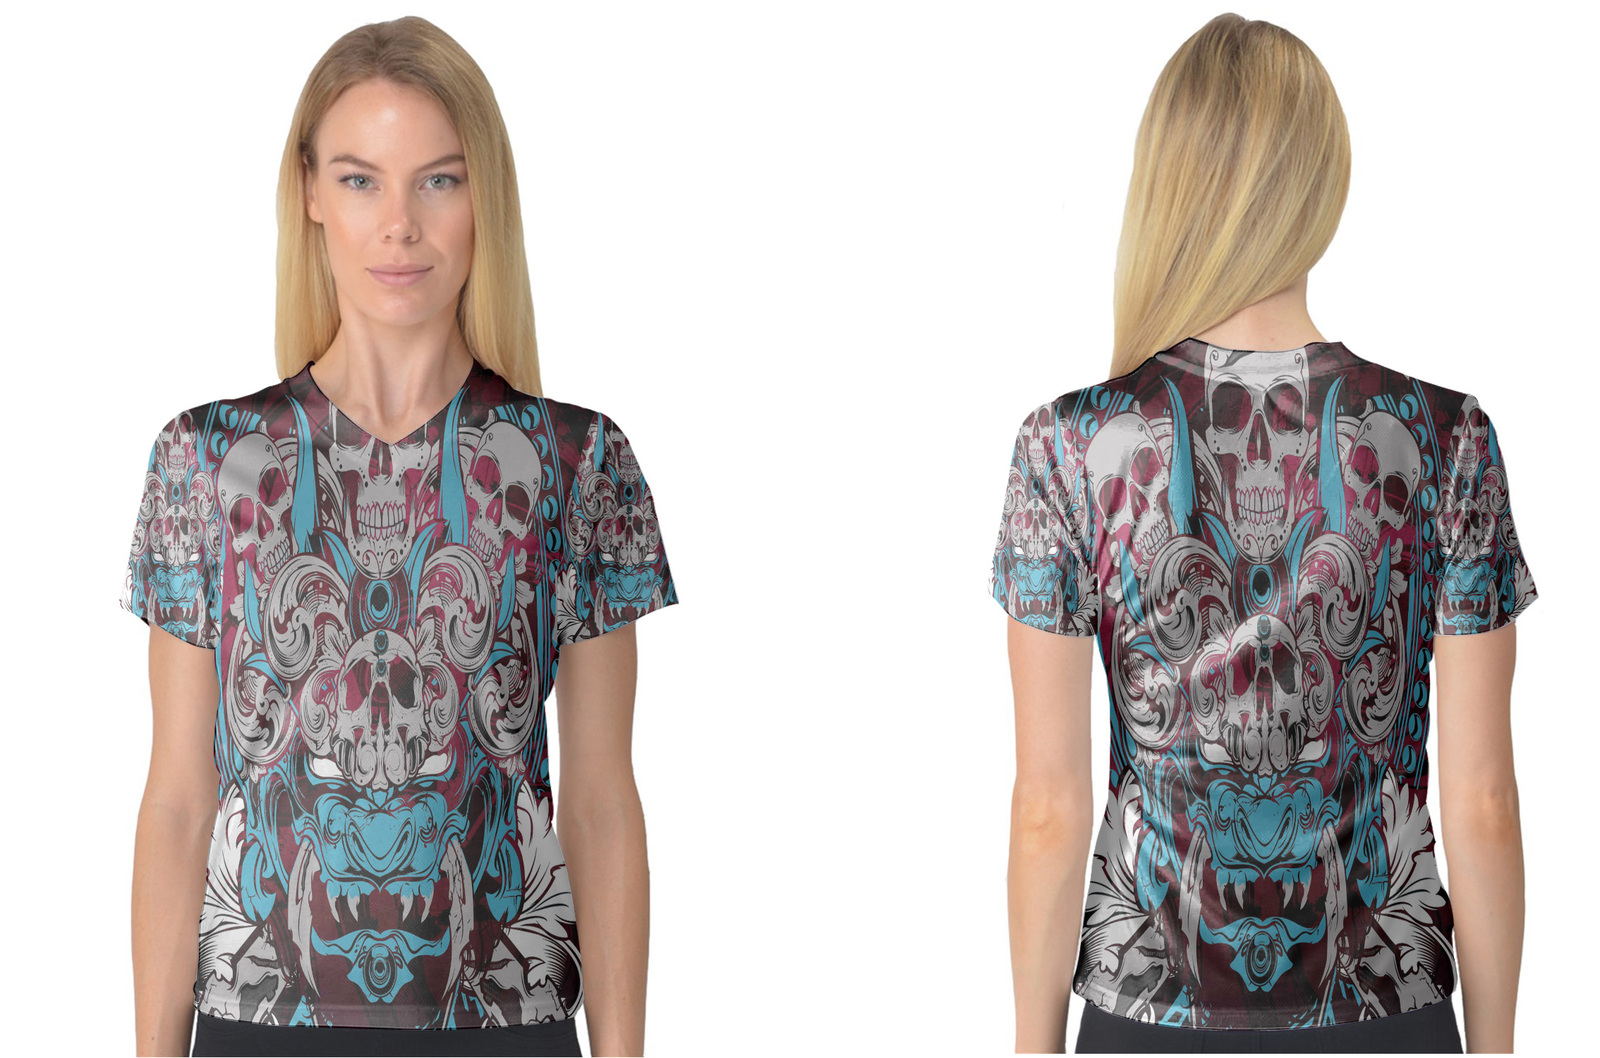 Primary image for Tatoo Collection #2 Women's V-Neck T-Shirt